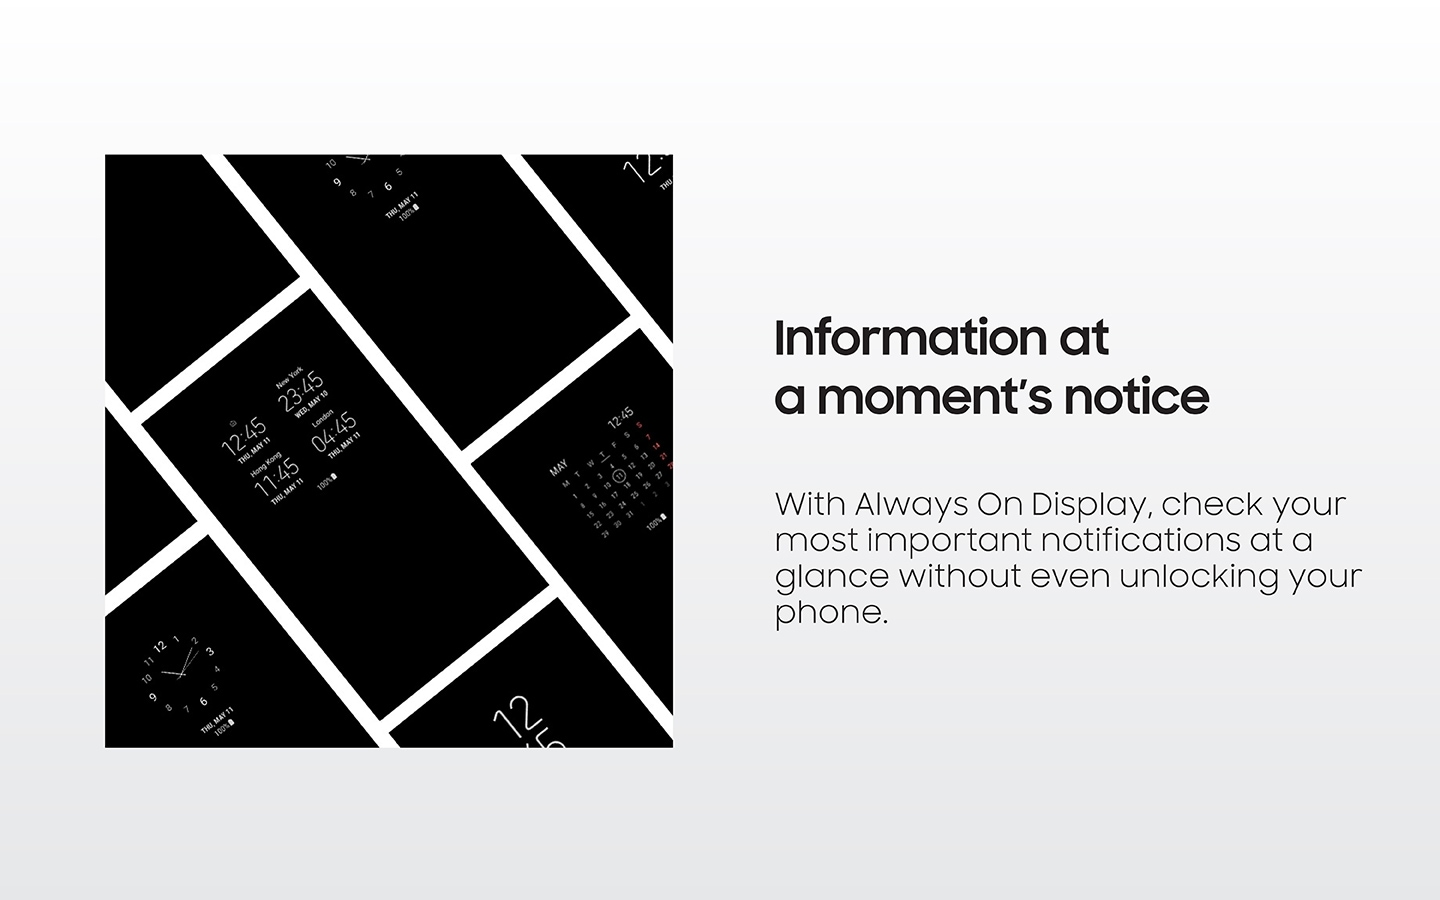 Always on Display - Information at a moment's notice